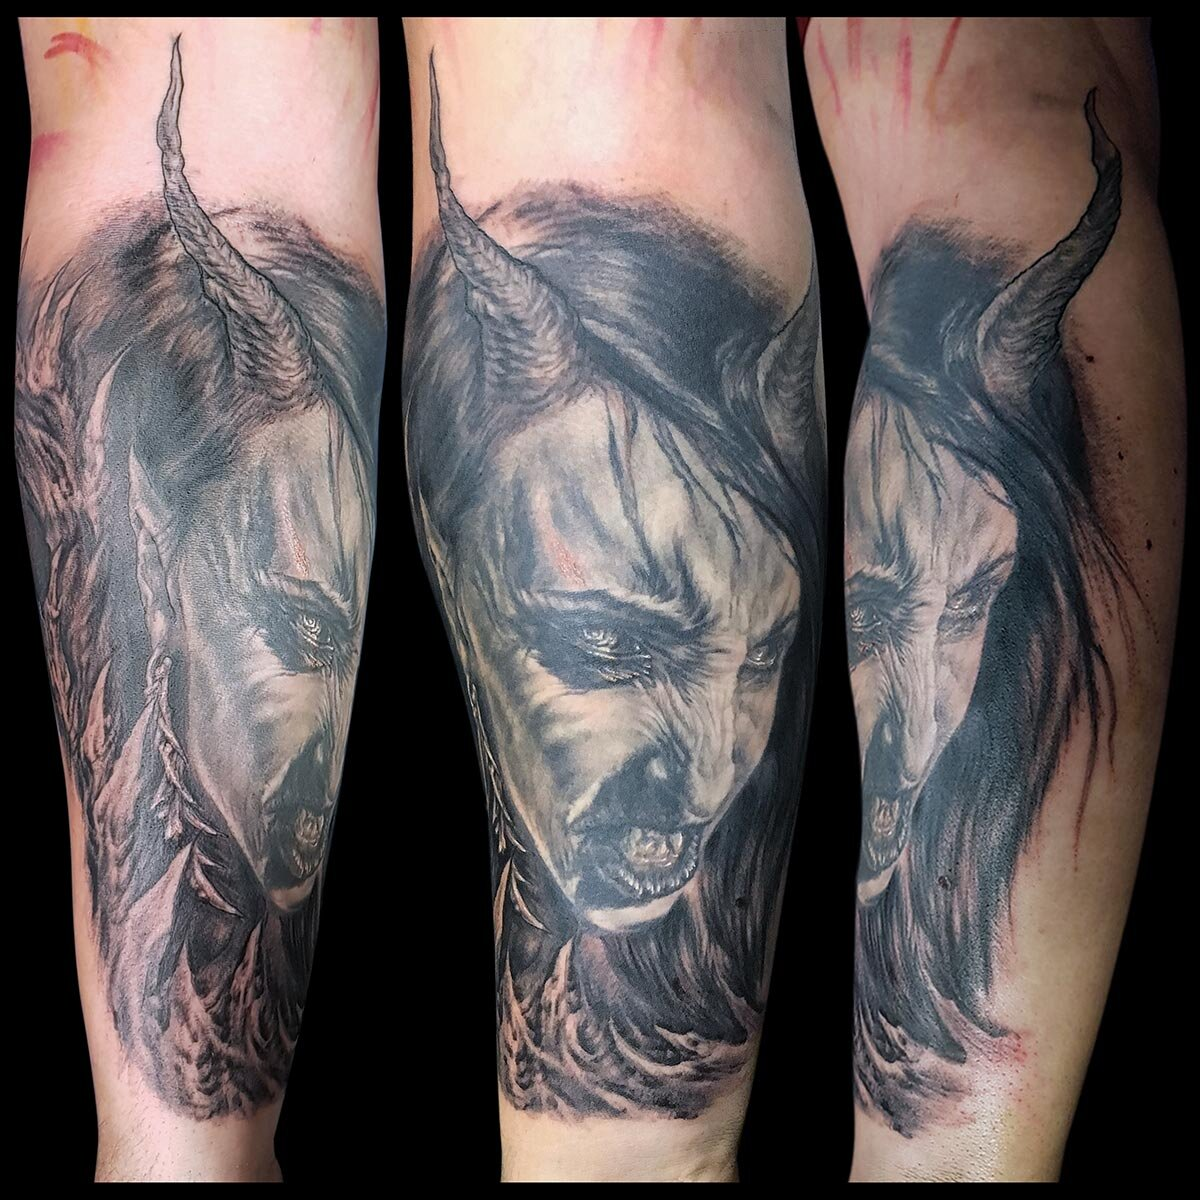 Black and Grey Female Demon Tattoo (part fresh, part healed). Many thanks to my friend  Makani Terror  for posing for me for a reference photo